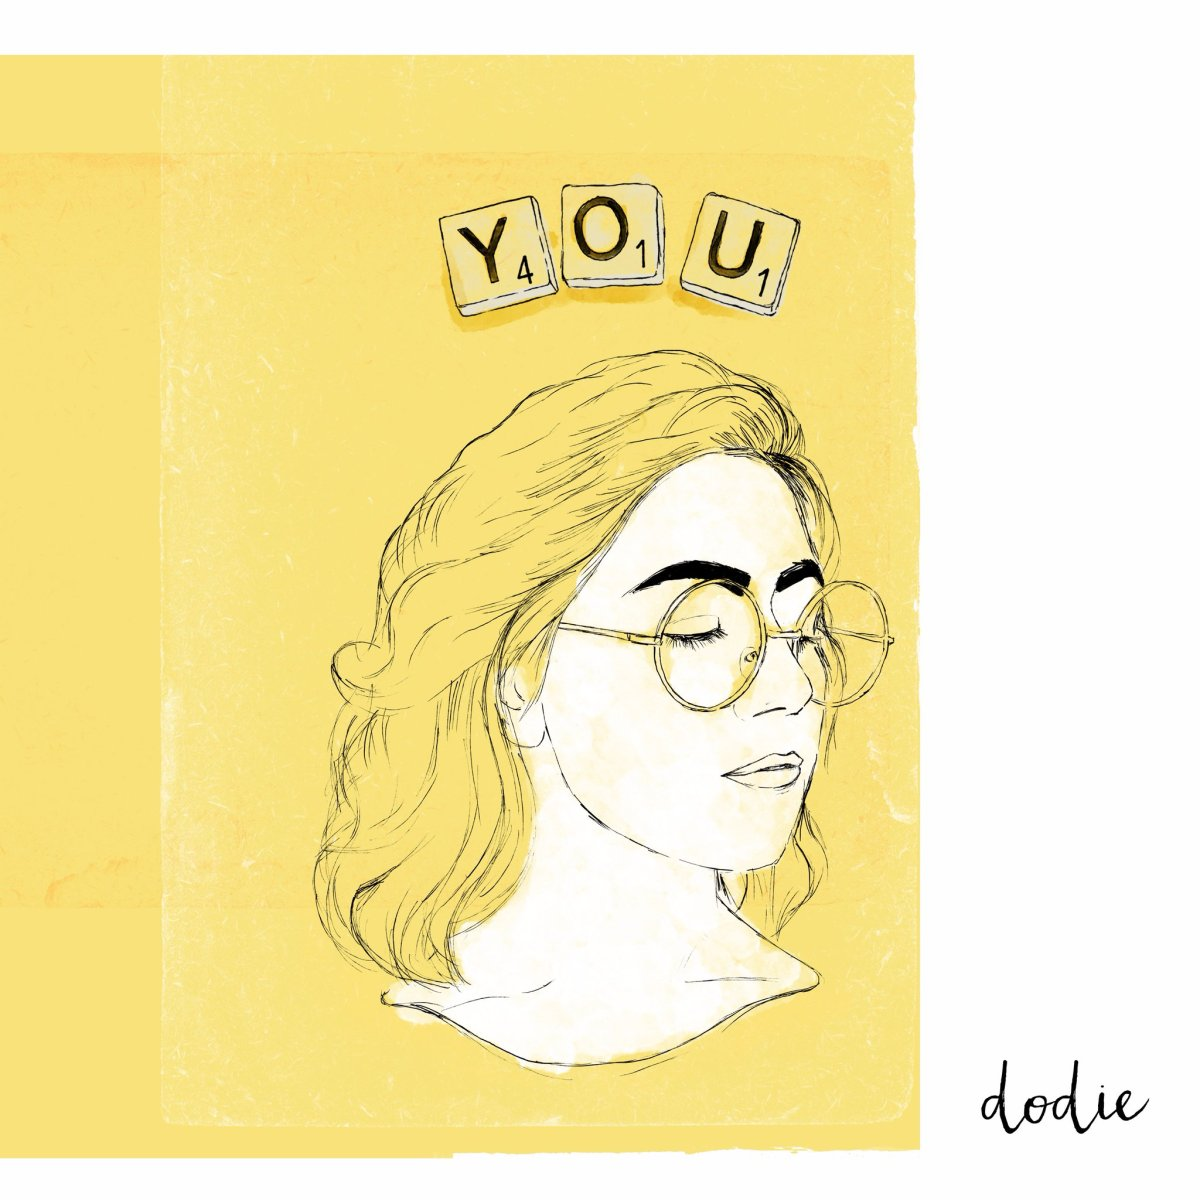 dodie makes music for plain girls on '6/10'